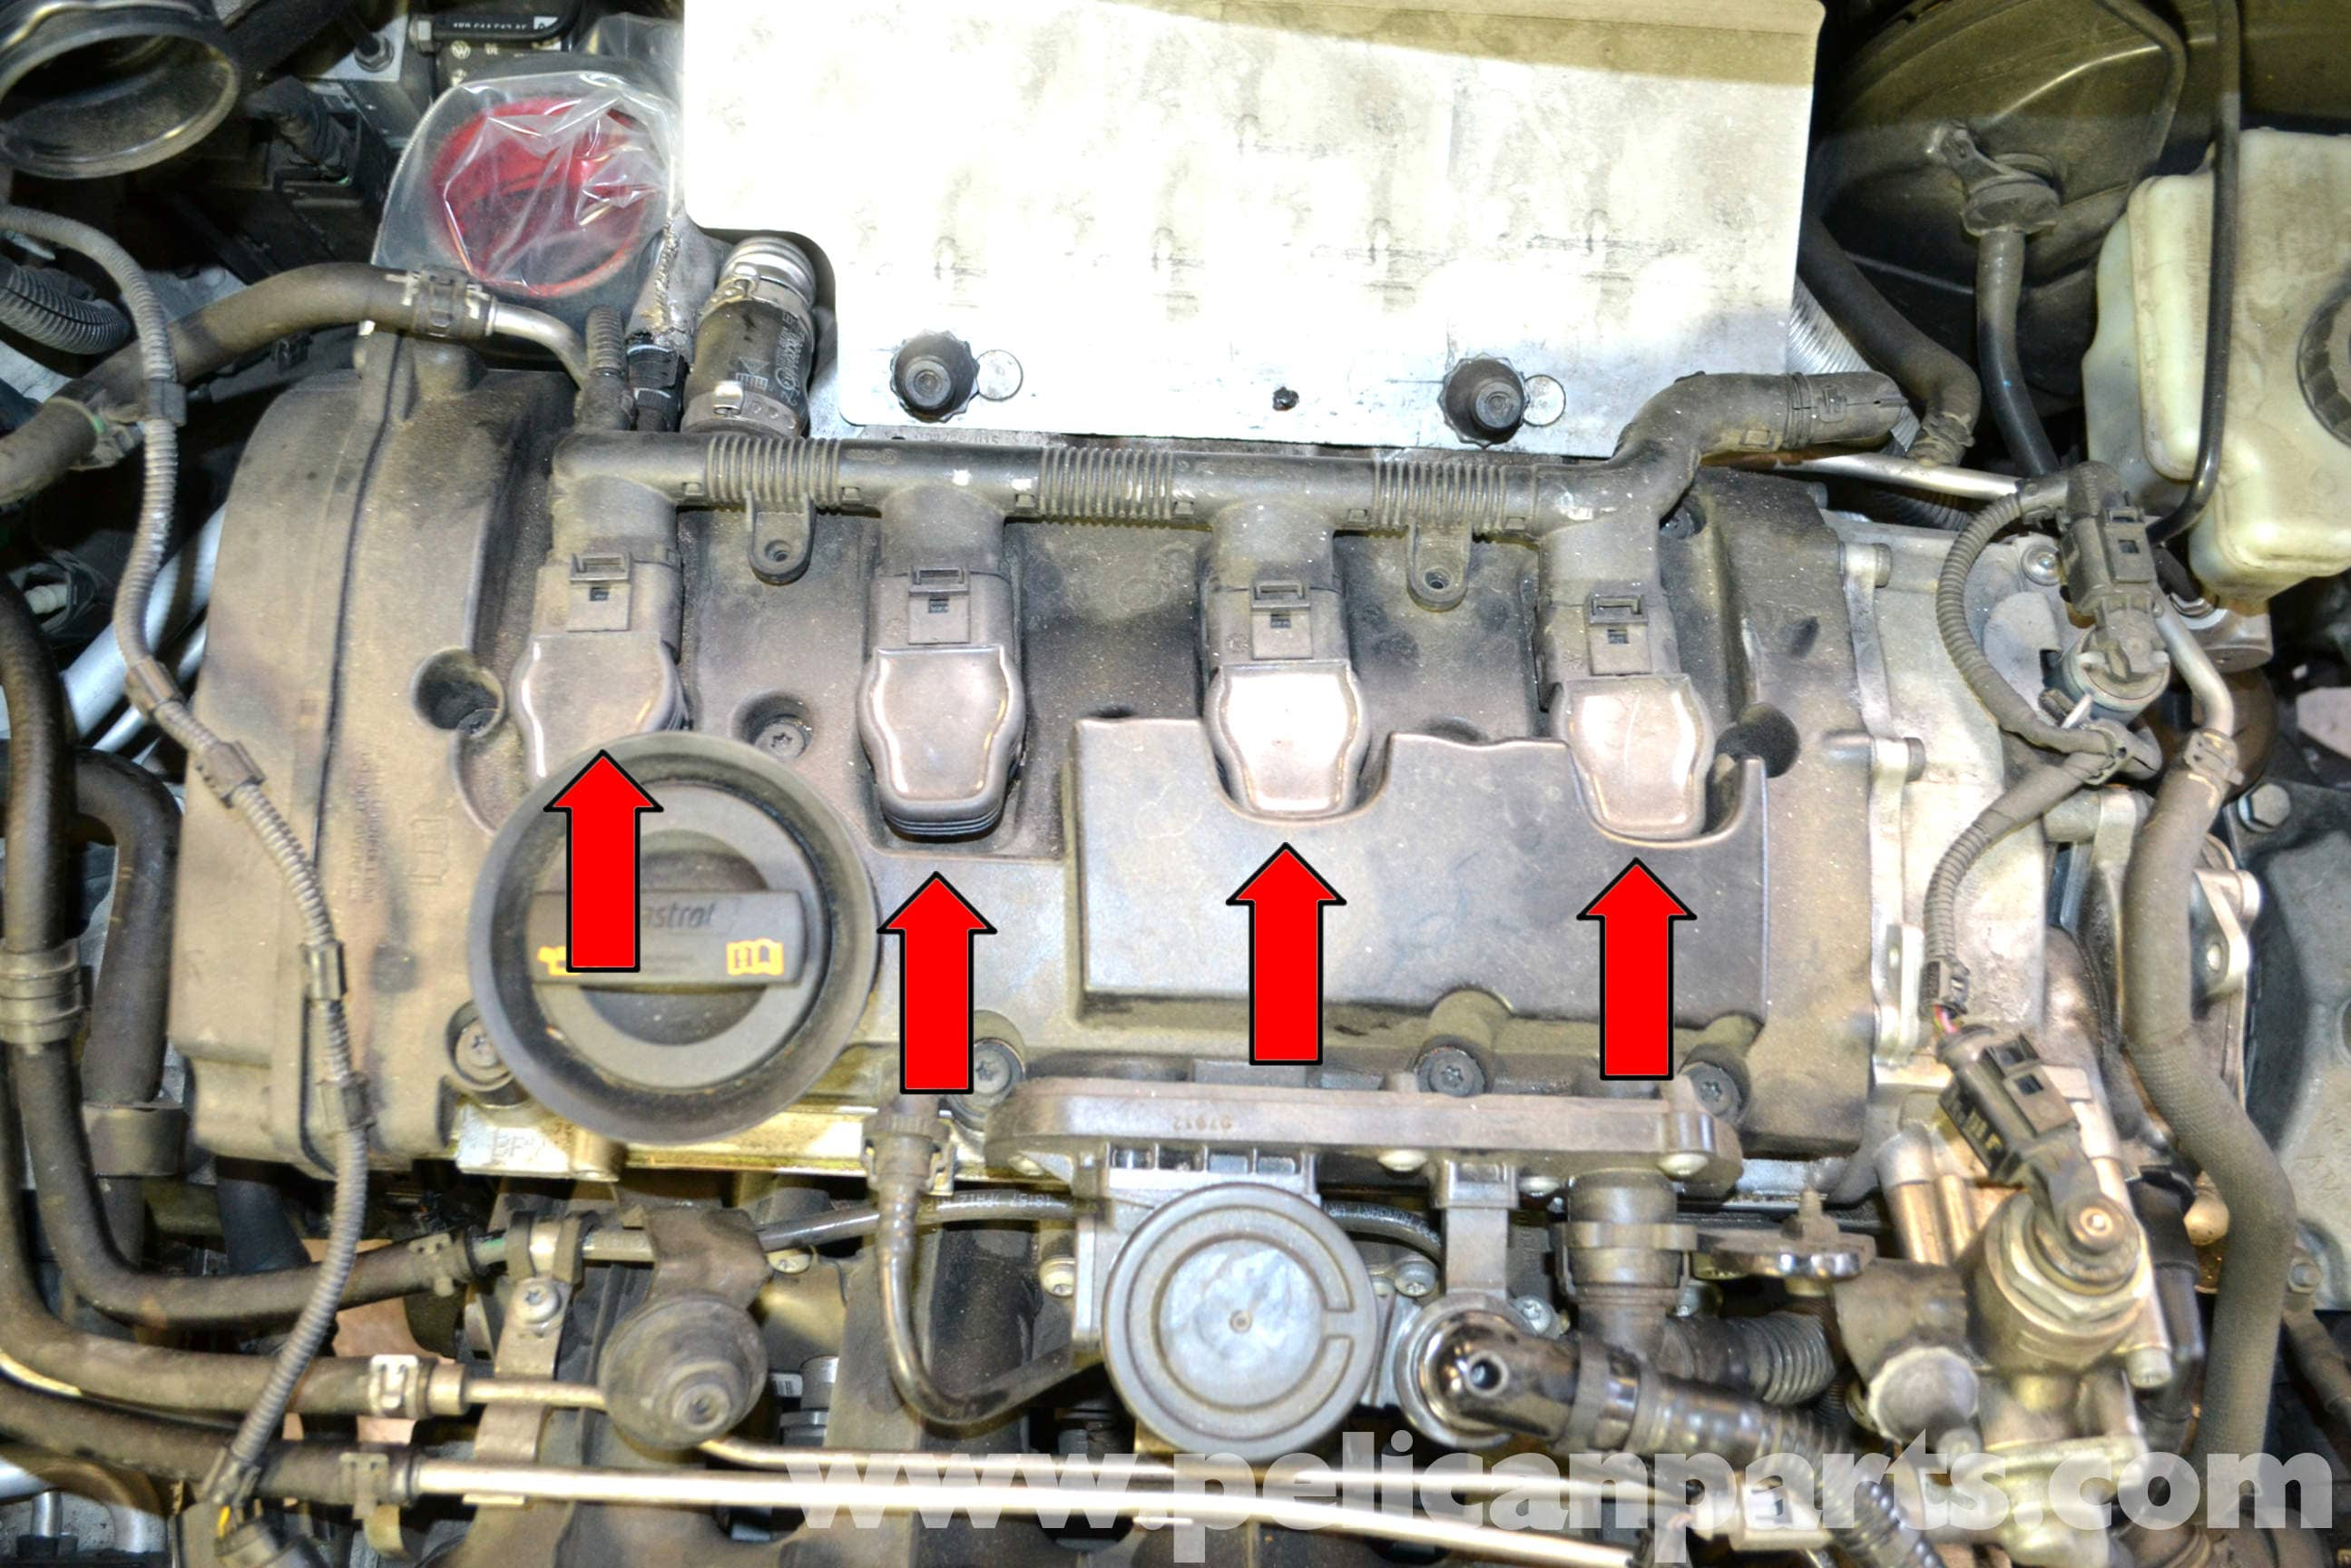 Volkswagen Golf Gti Mk V Spark Plug And Coil Replacement